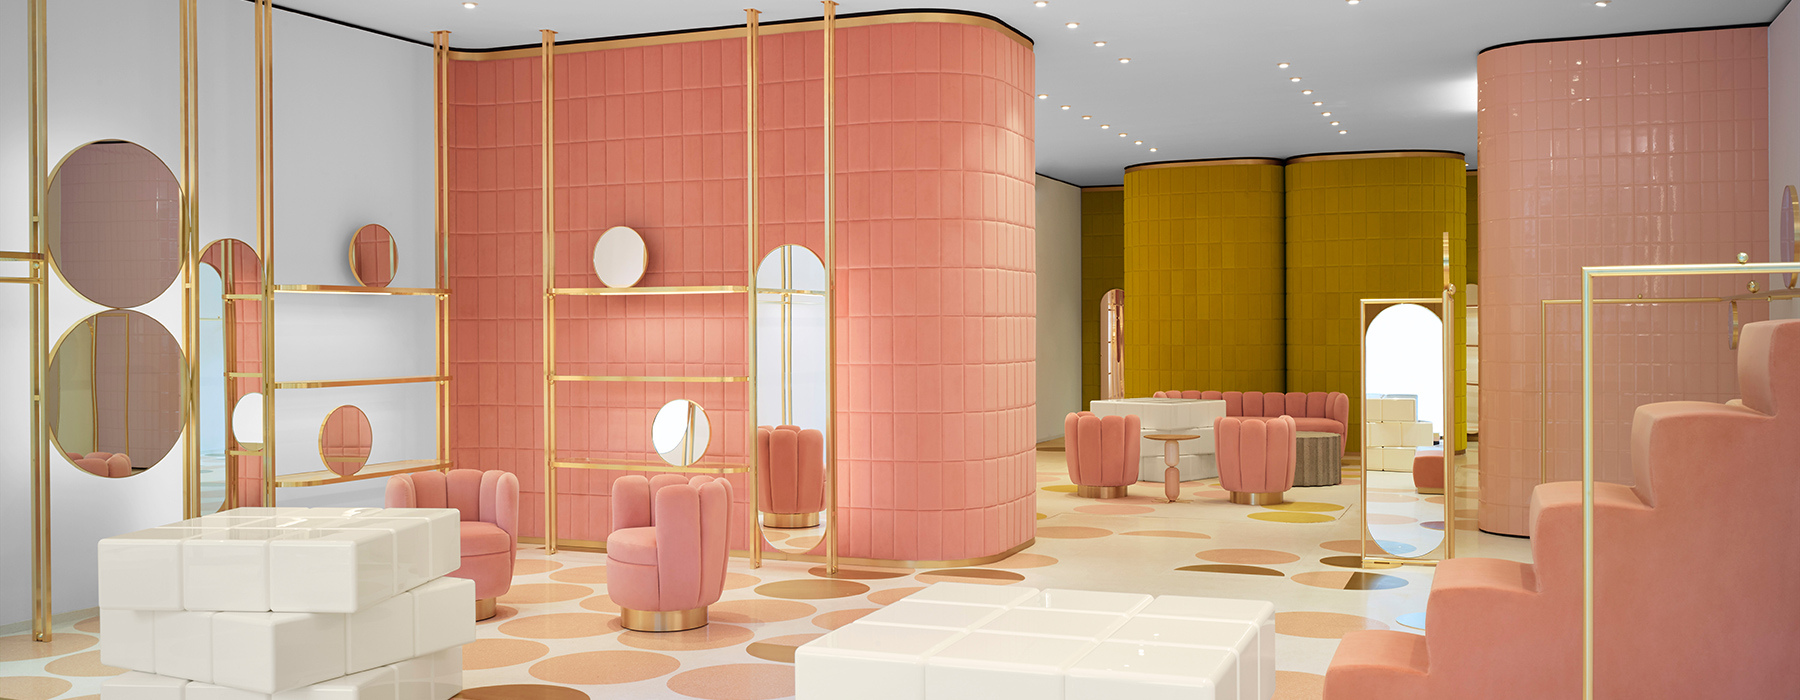 india mahdavi s interior design is pastel velveteen perfection